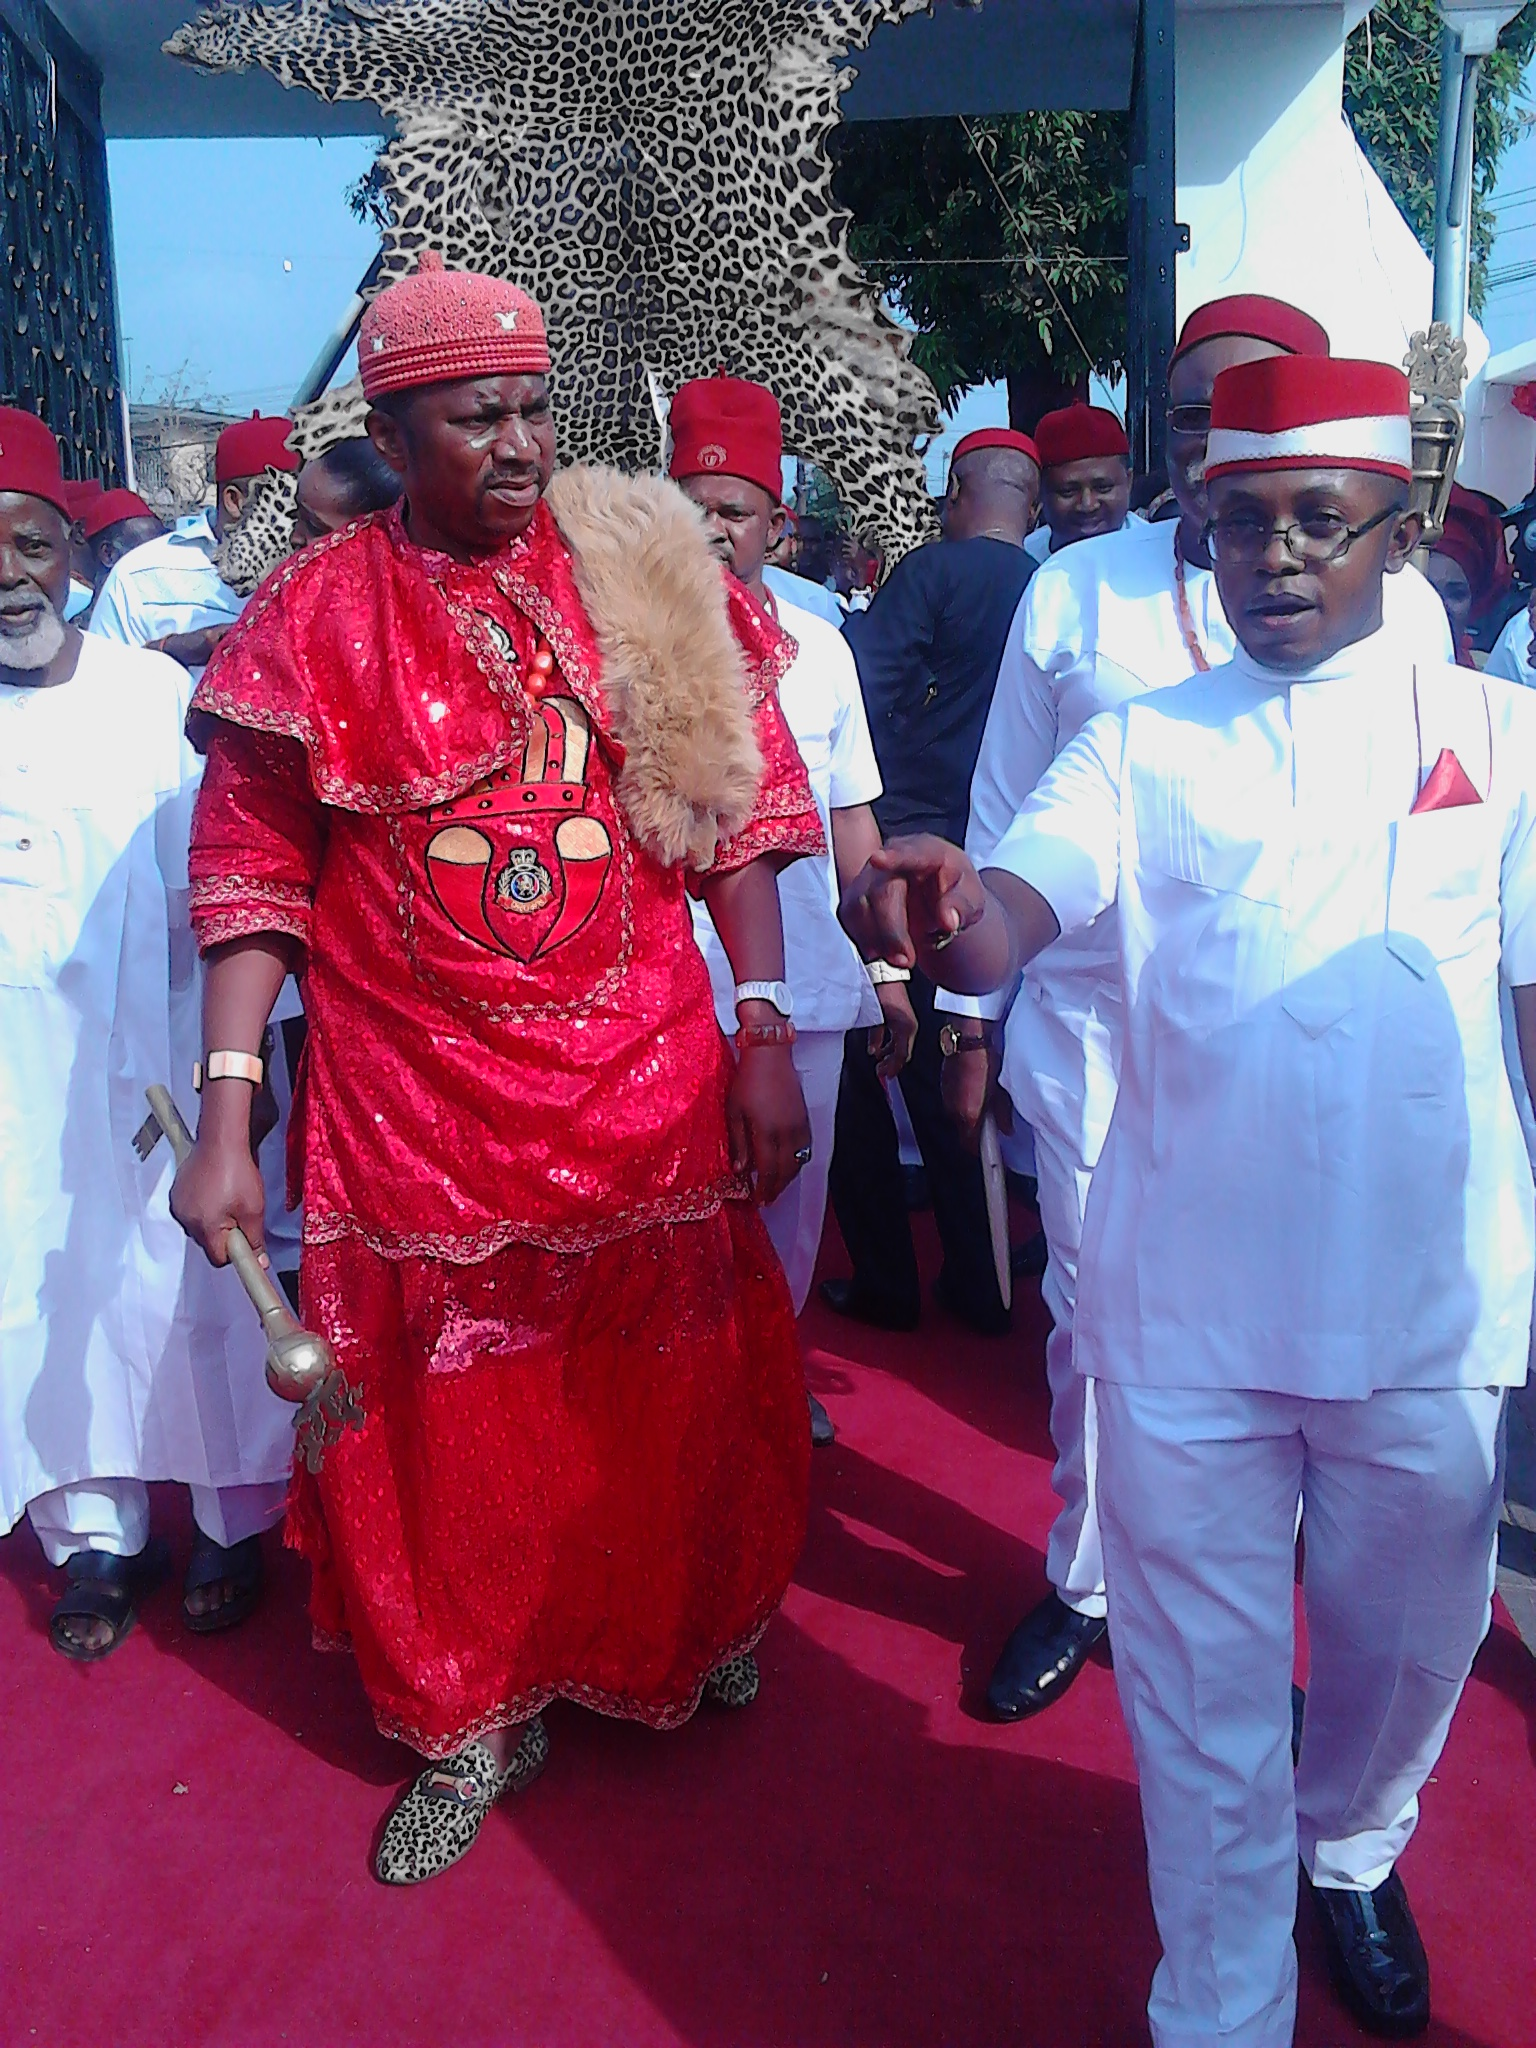 Symbol Of Judgement By Igbo People Nigeria History Culture And Me